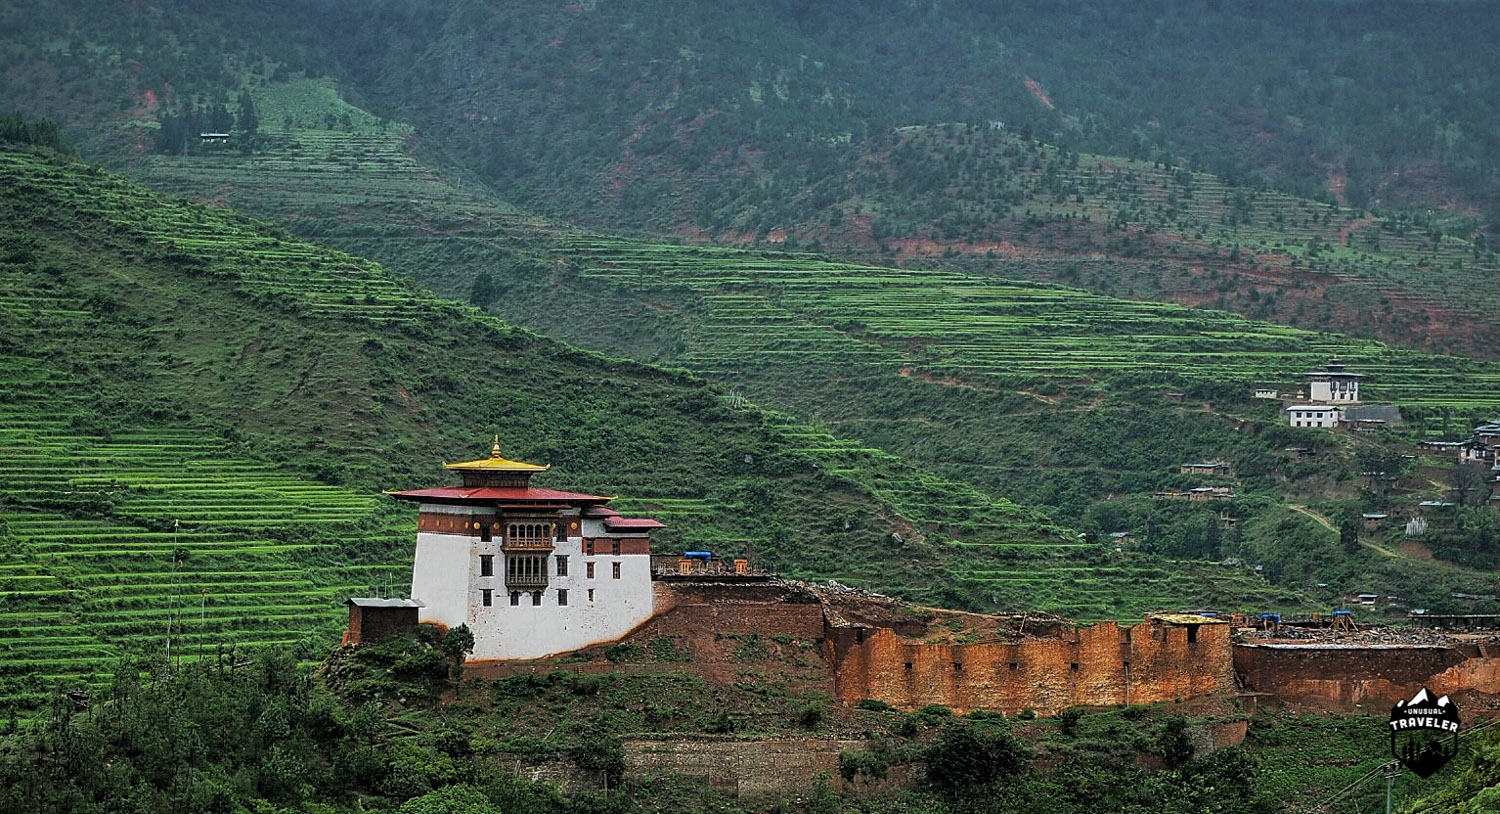 There´s 20 Dzongs around the country, here the remains of Wangdue Phodrang Dzong in western Bhutan.